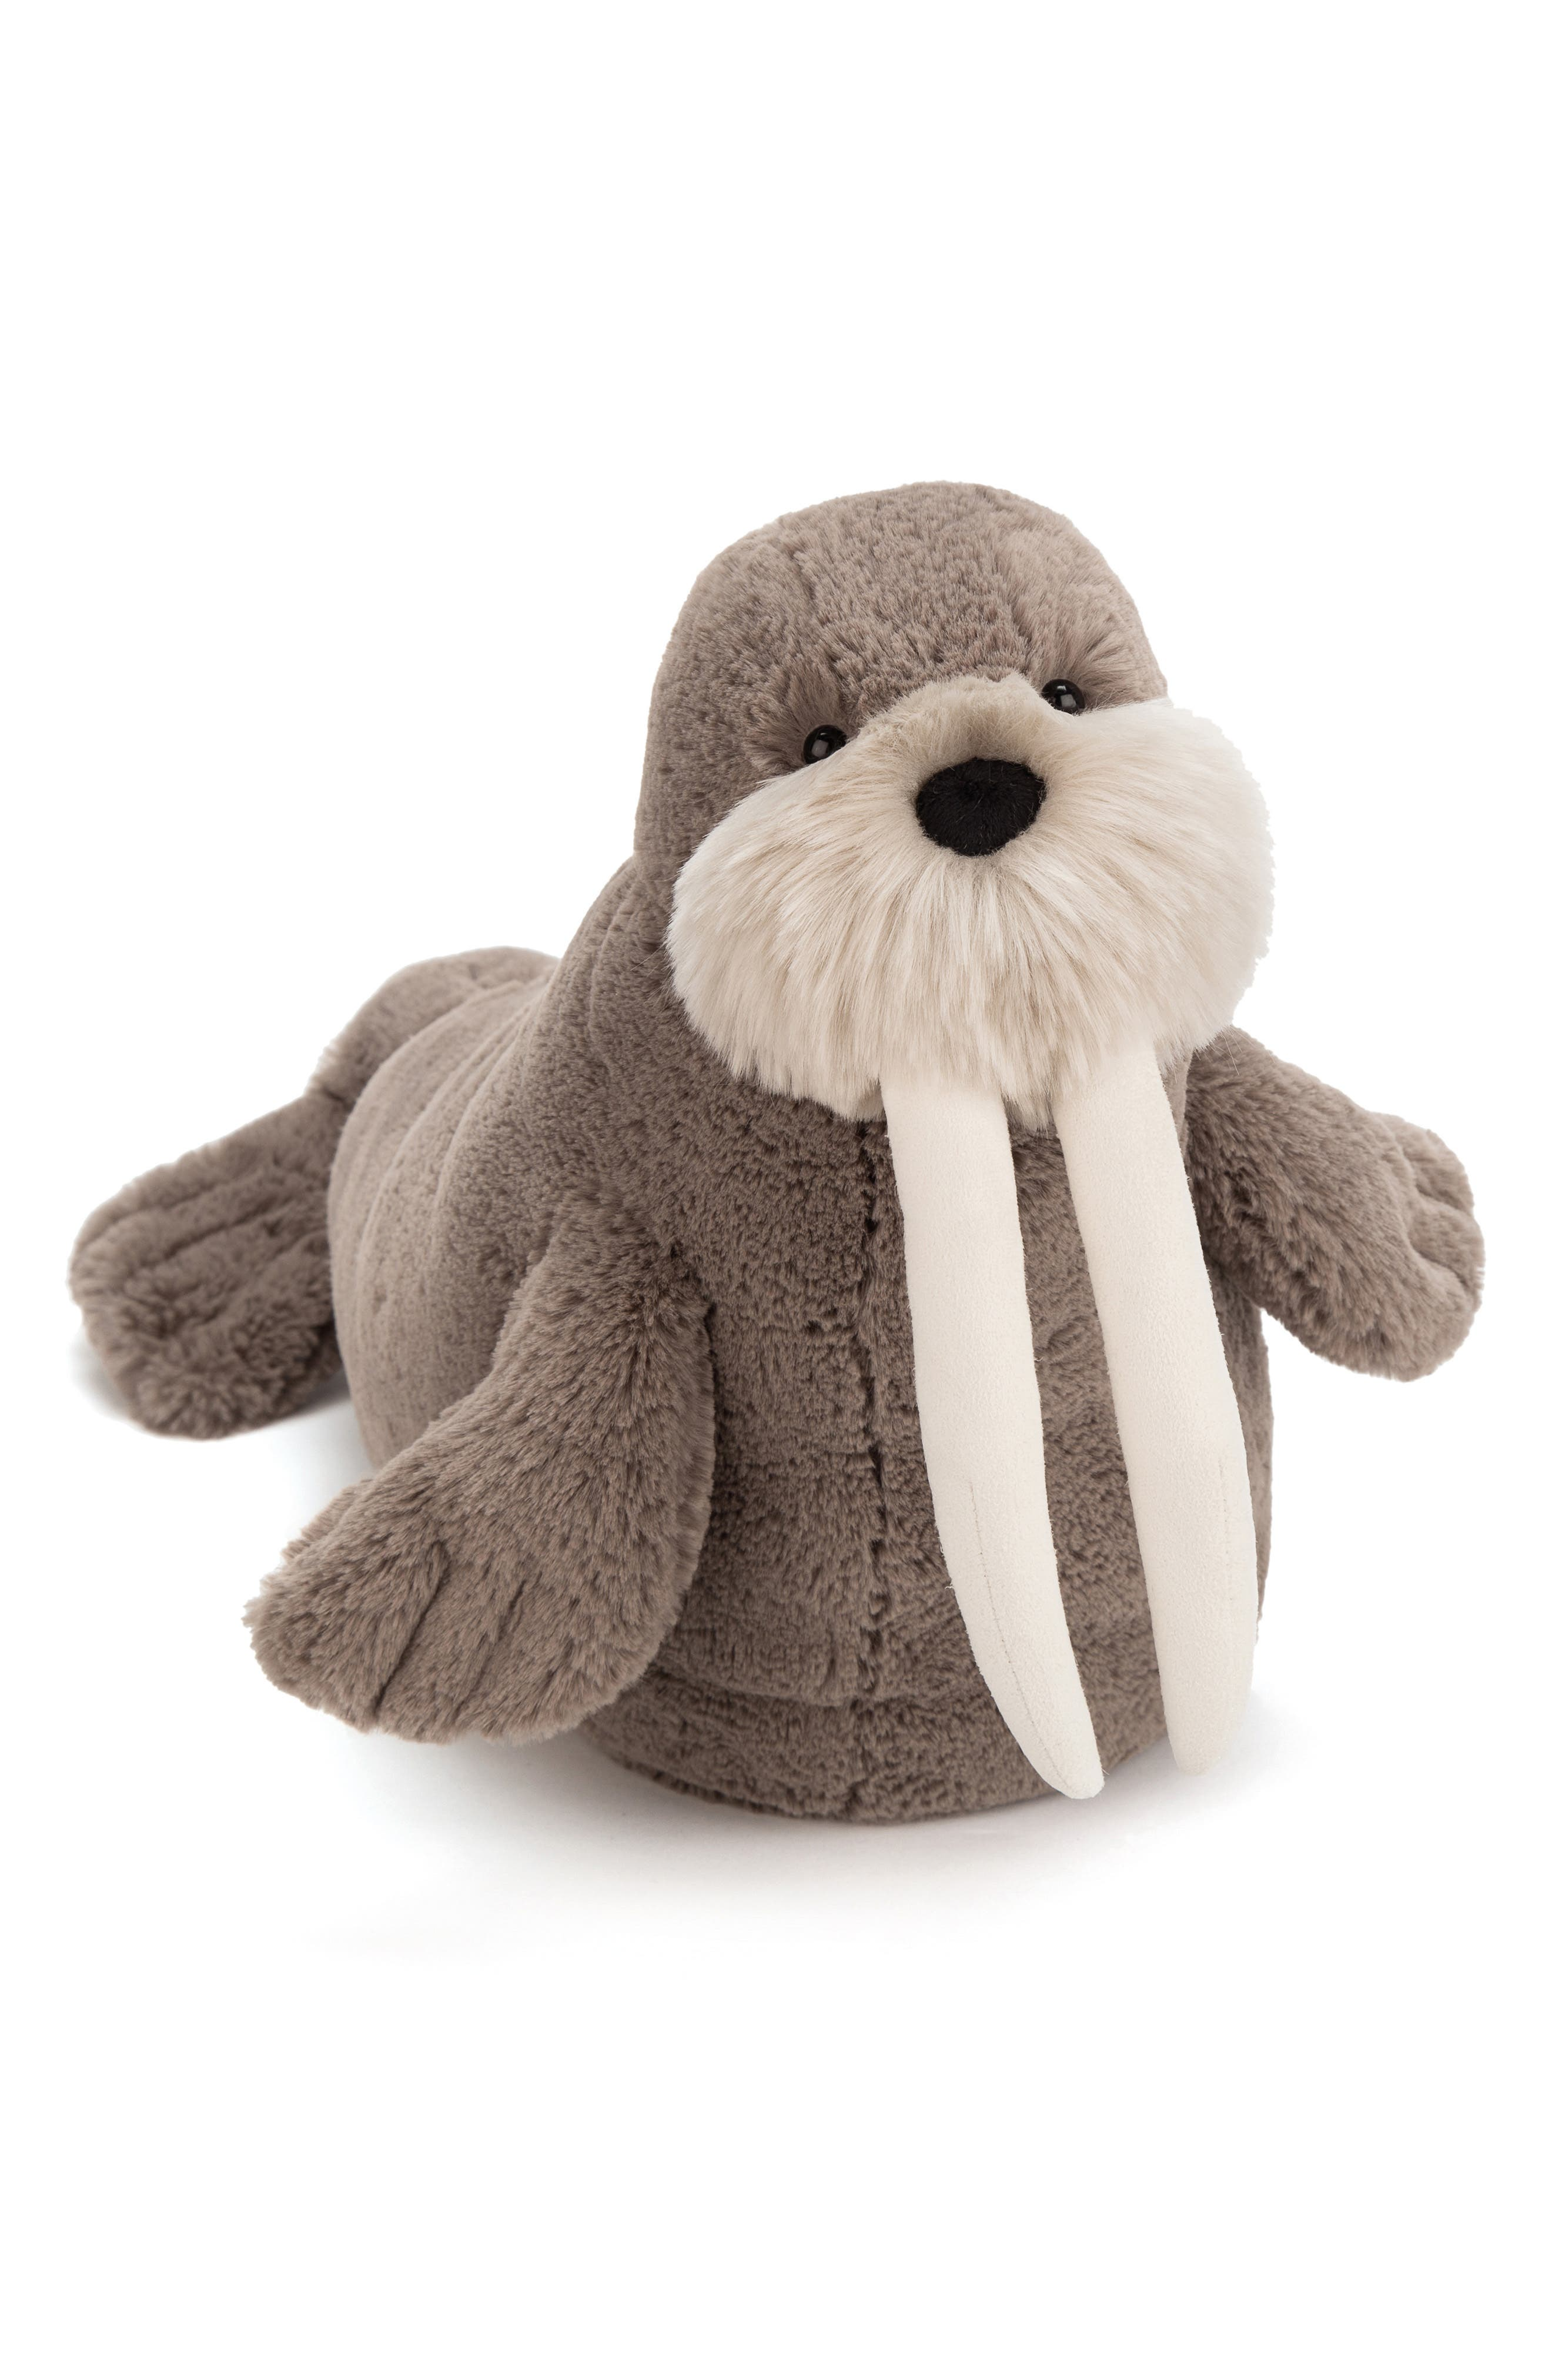 Willy Walrus Stuffed Animal,                             Main thumbnail 1, color,                             030